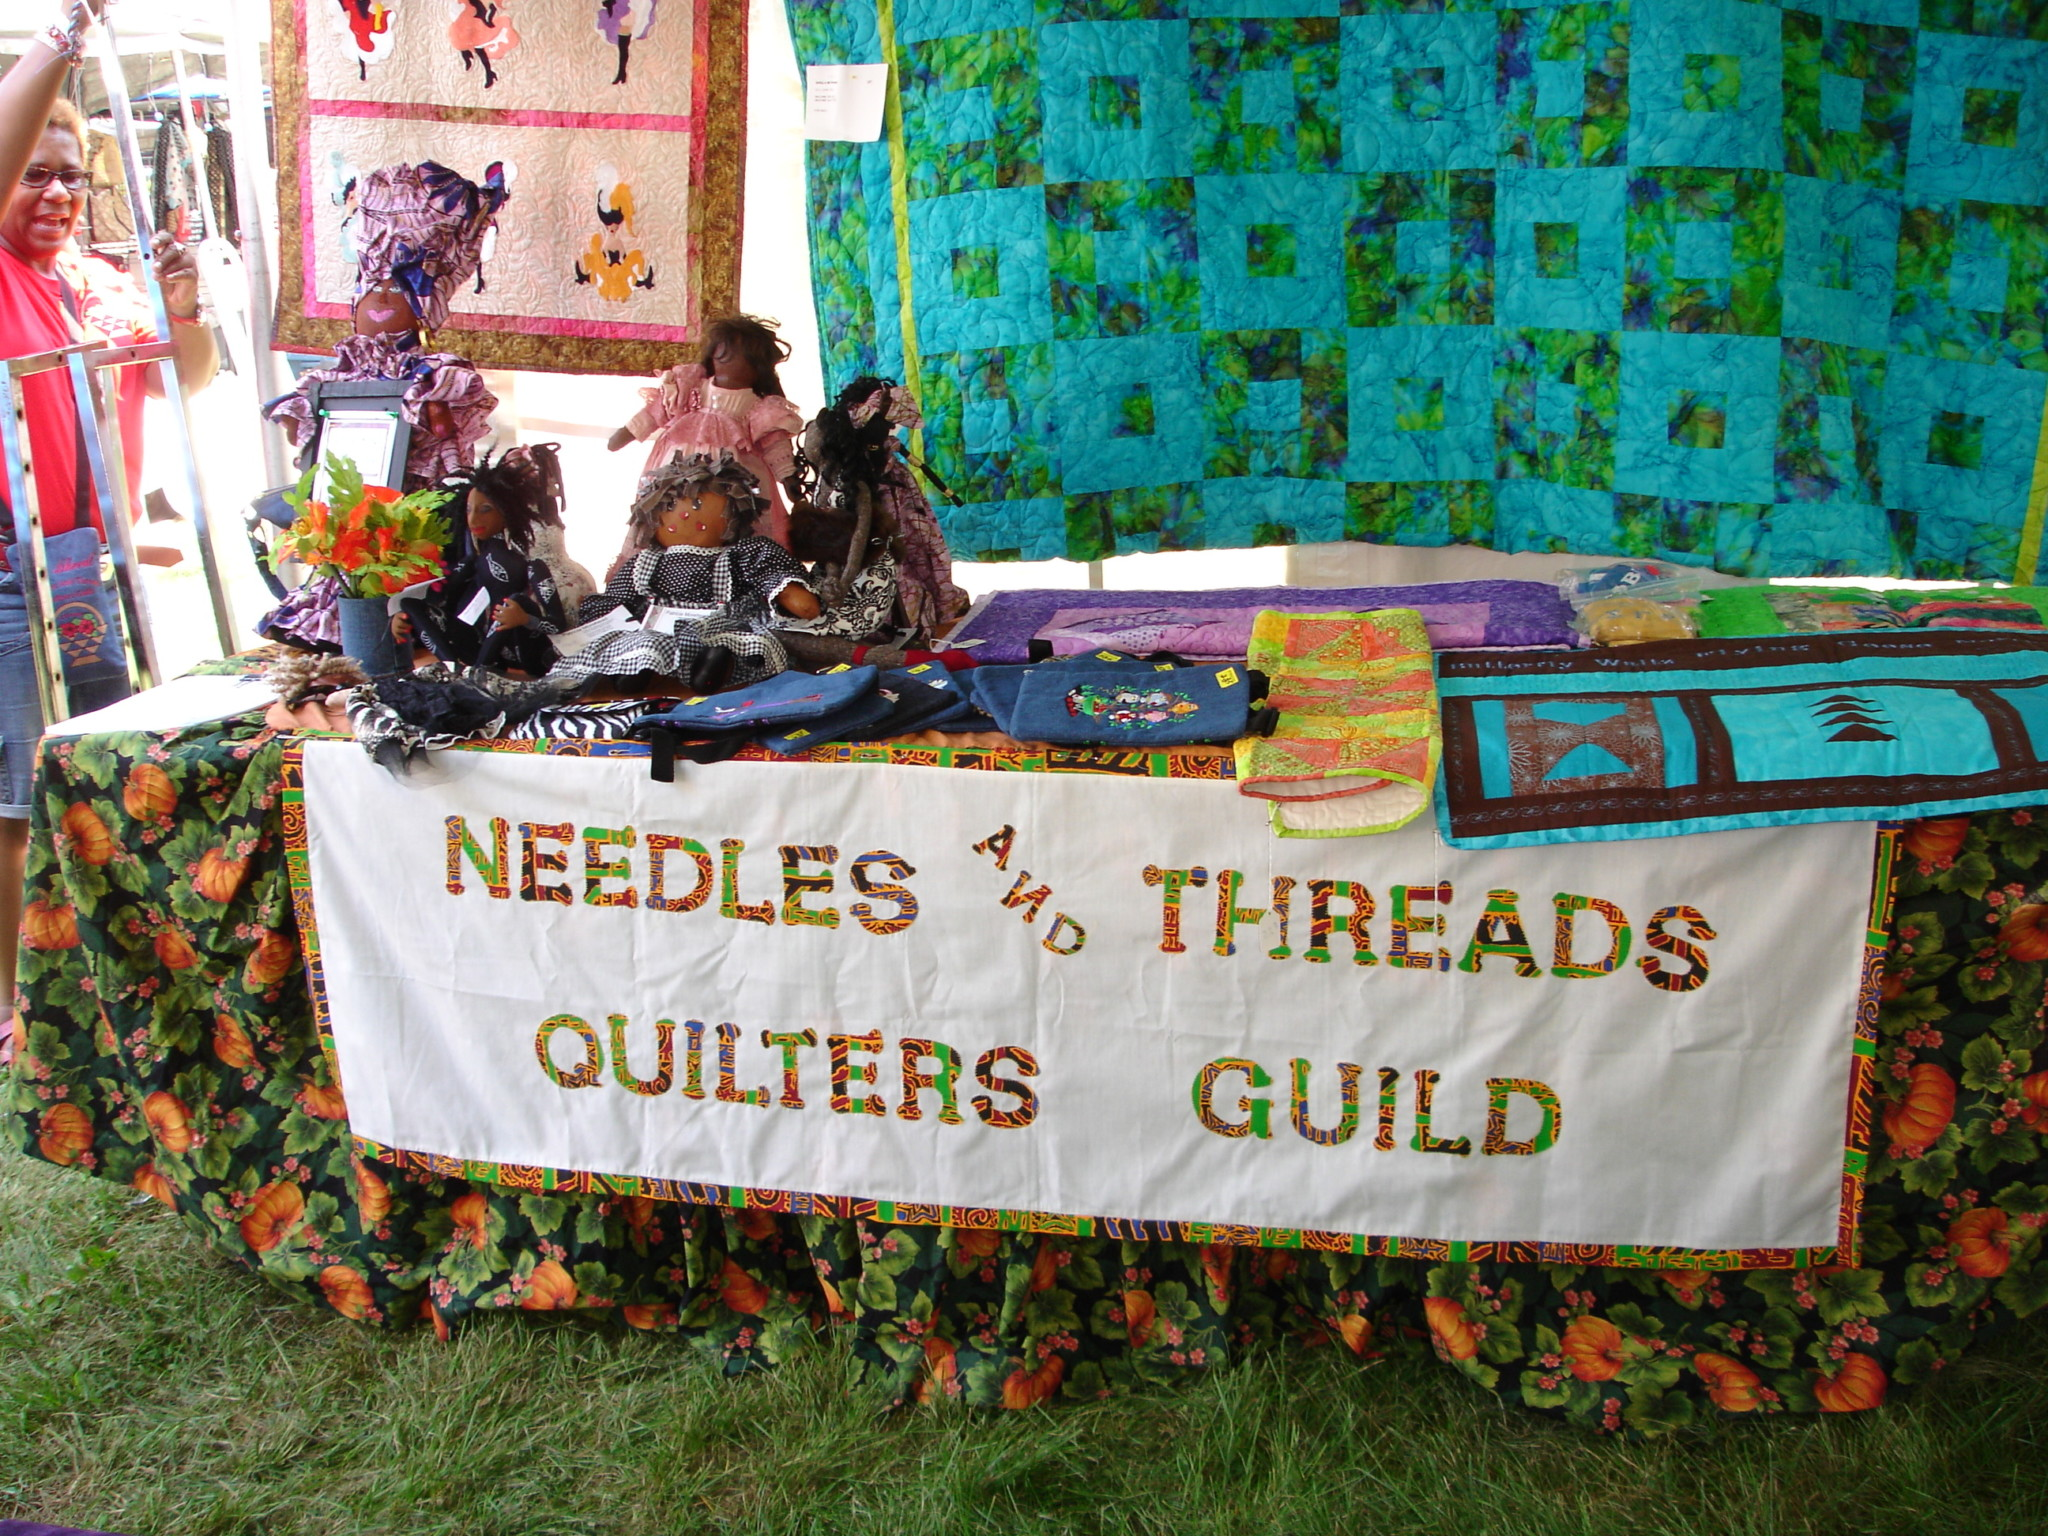 Courtesy of Needles & Threads Quilters Guild